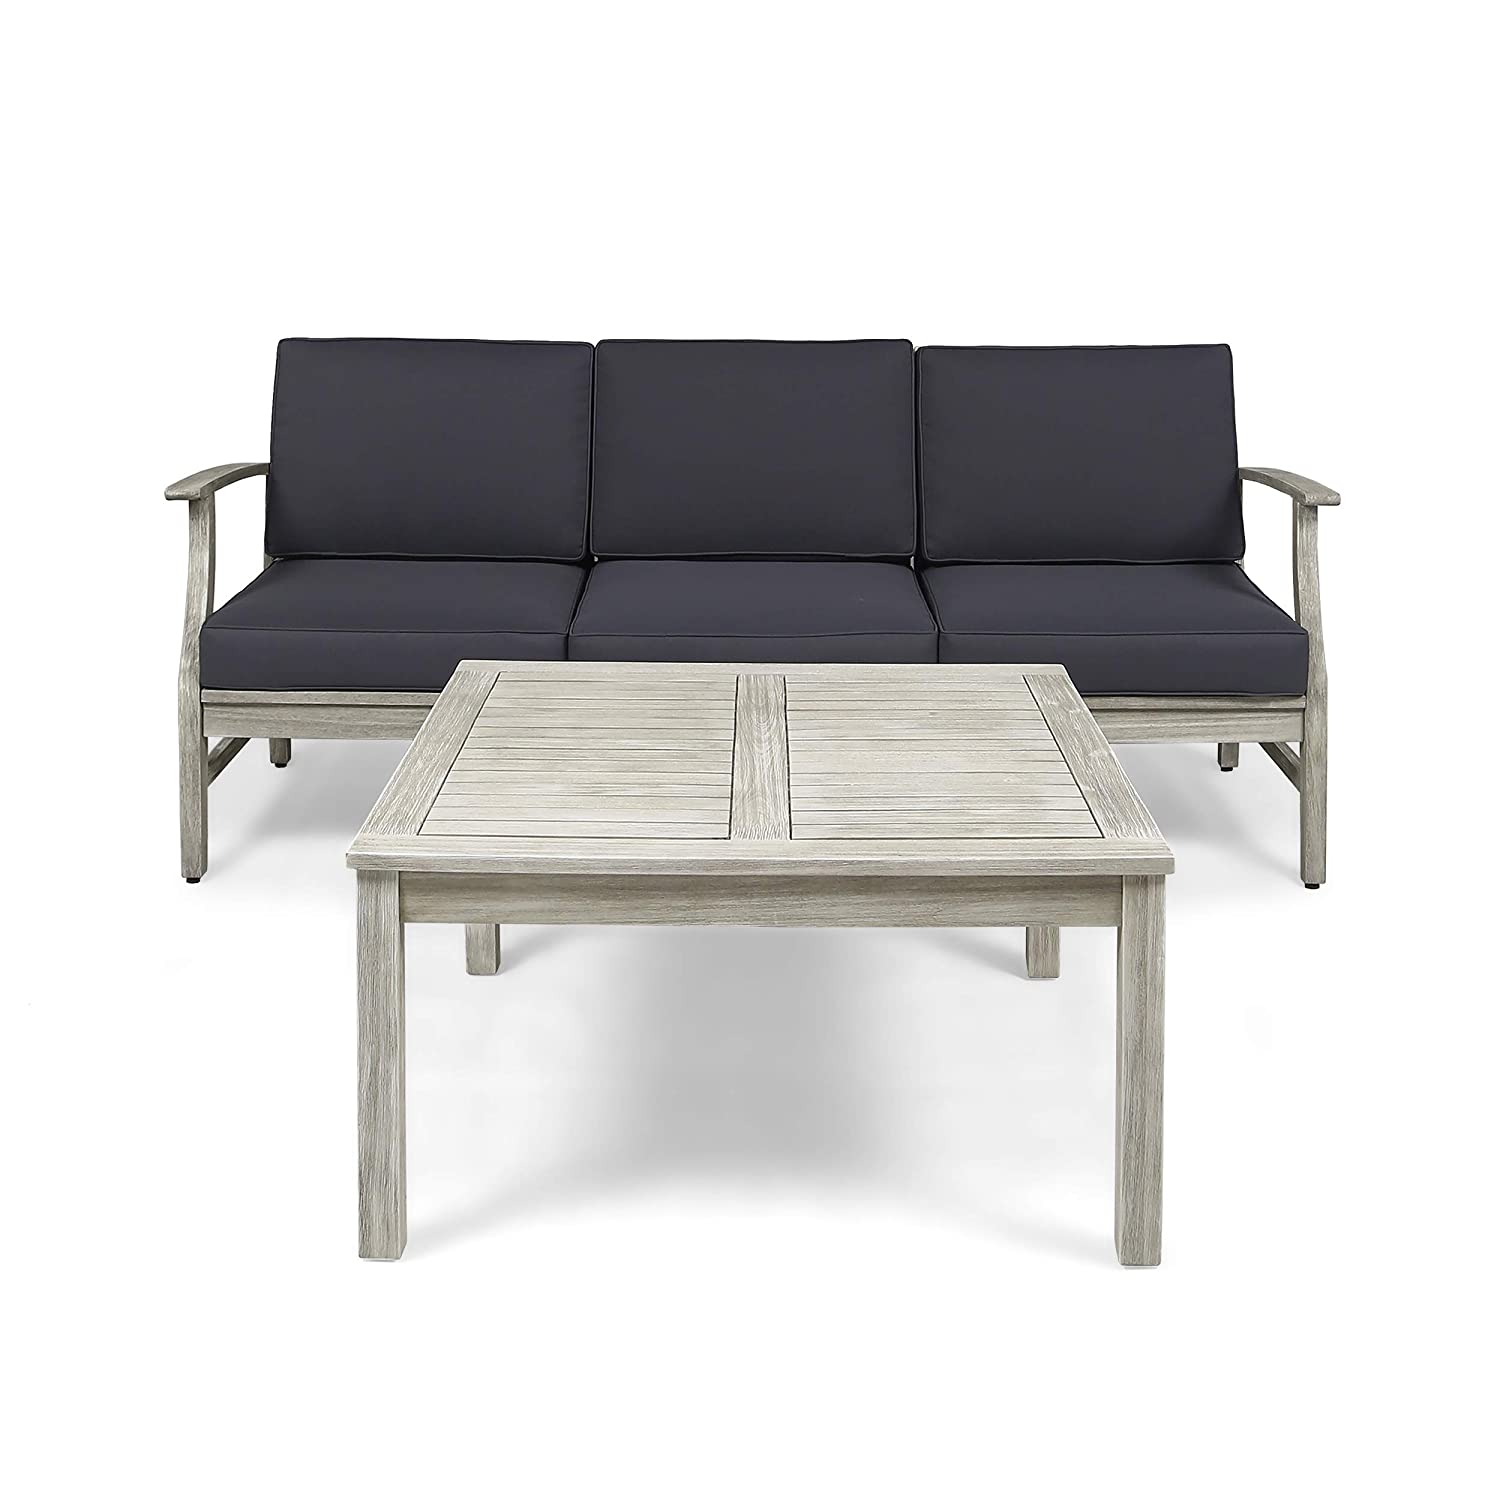 Great Deal Furniture Lorelei Outdoor 4 Piece Acacia Wood Sofa and Coffee Table Set, Light Gray and Dark Gray